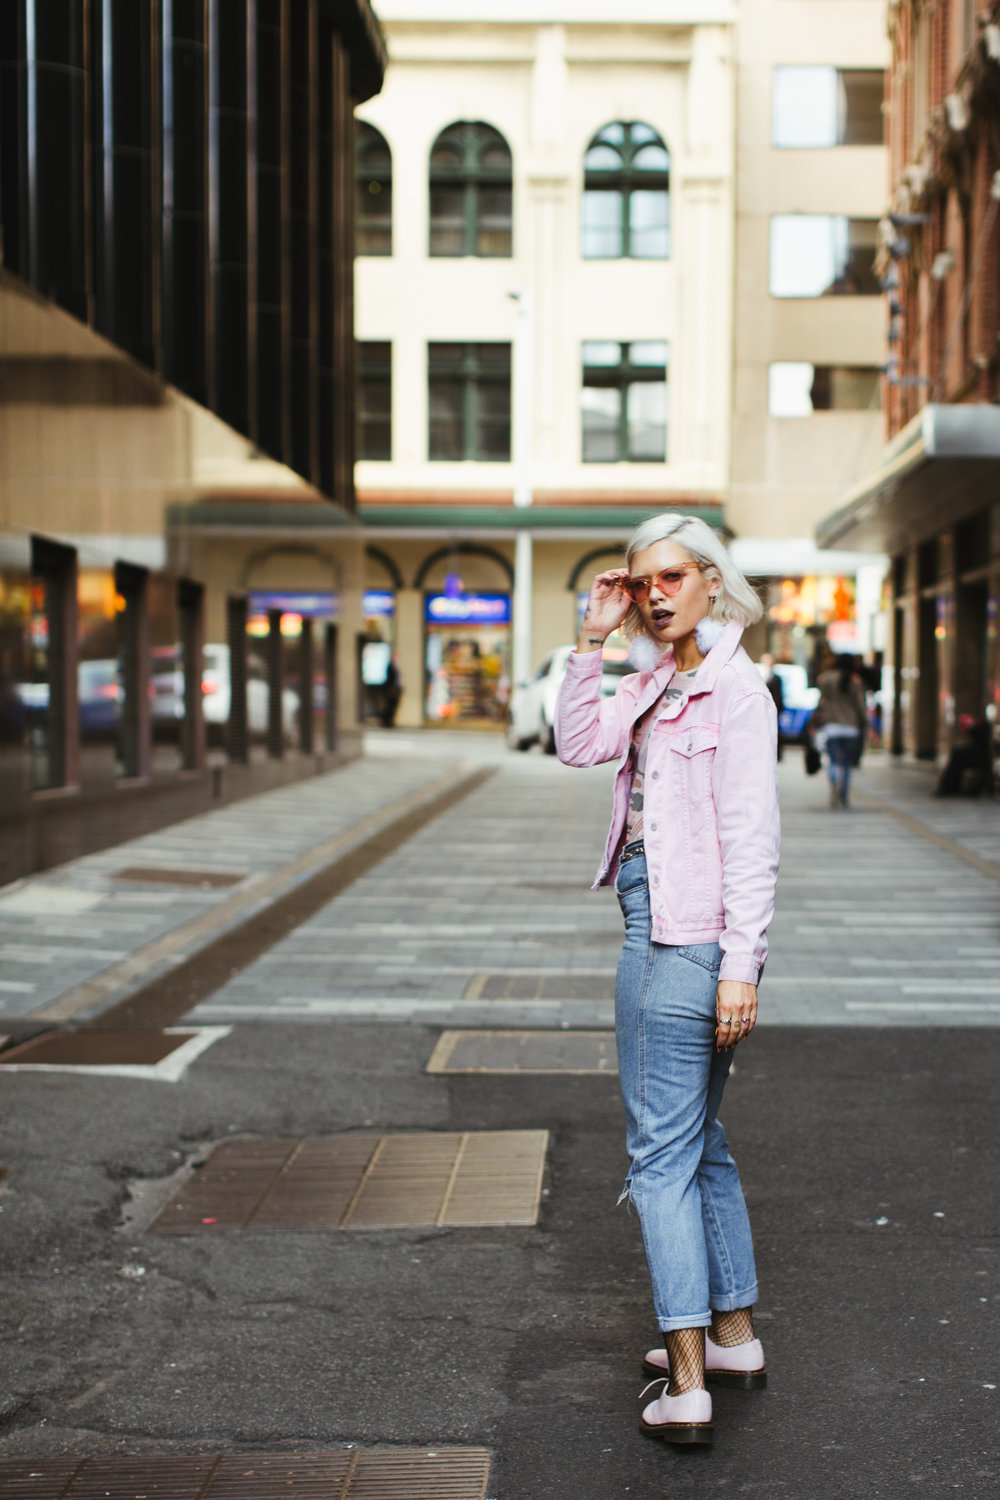 Paige-Newton-Photography-Chic-Blogger-Managament-Sydney-Influencer7.jpg